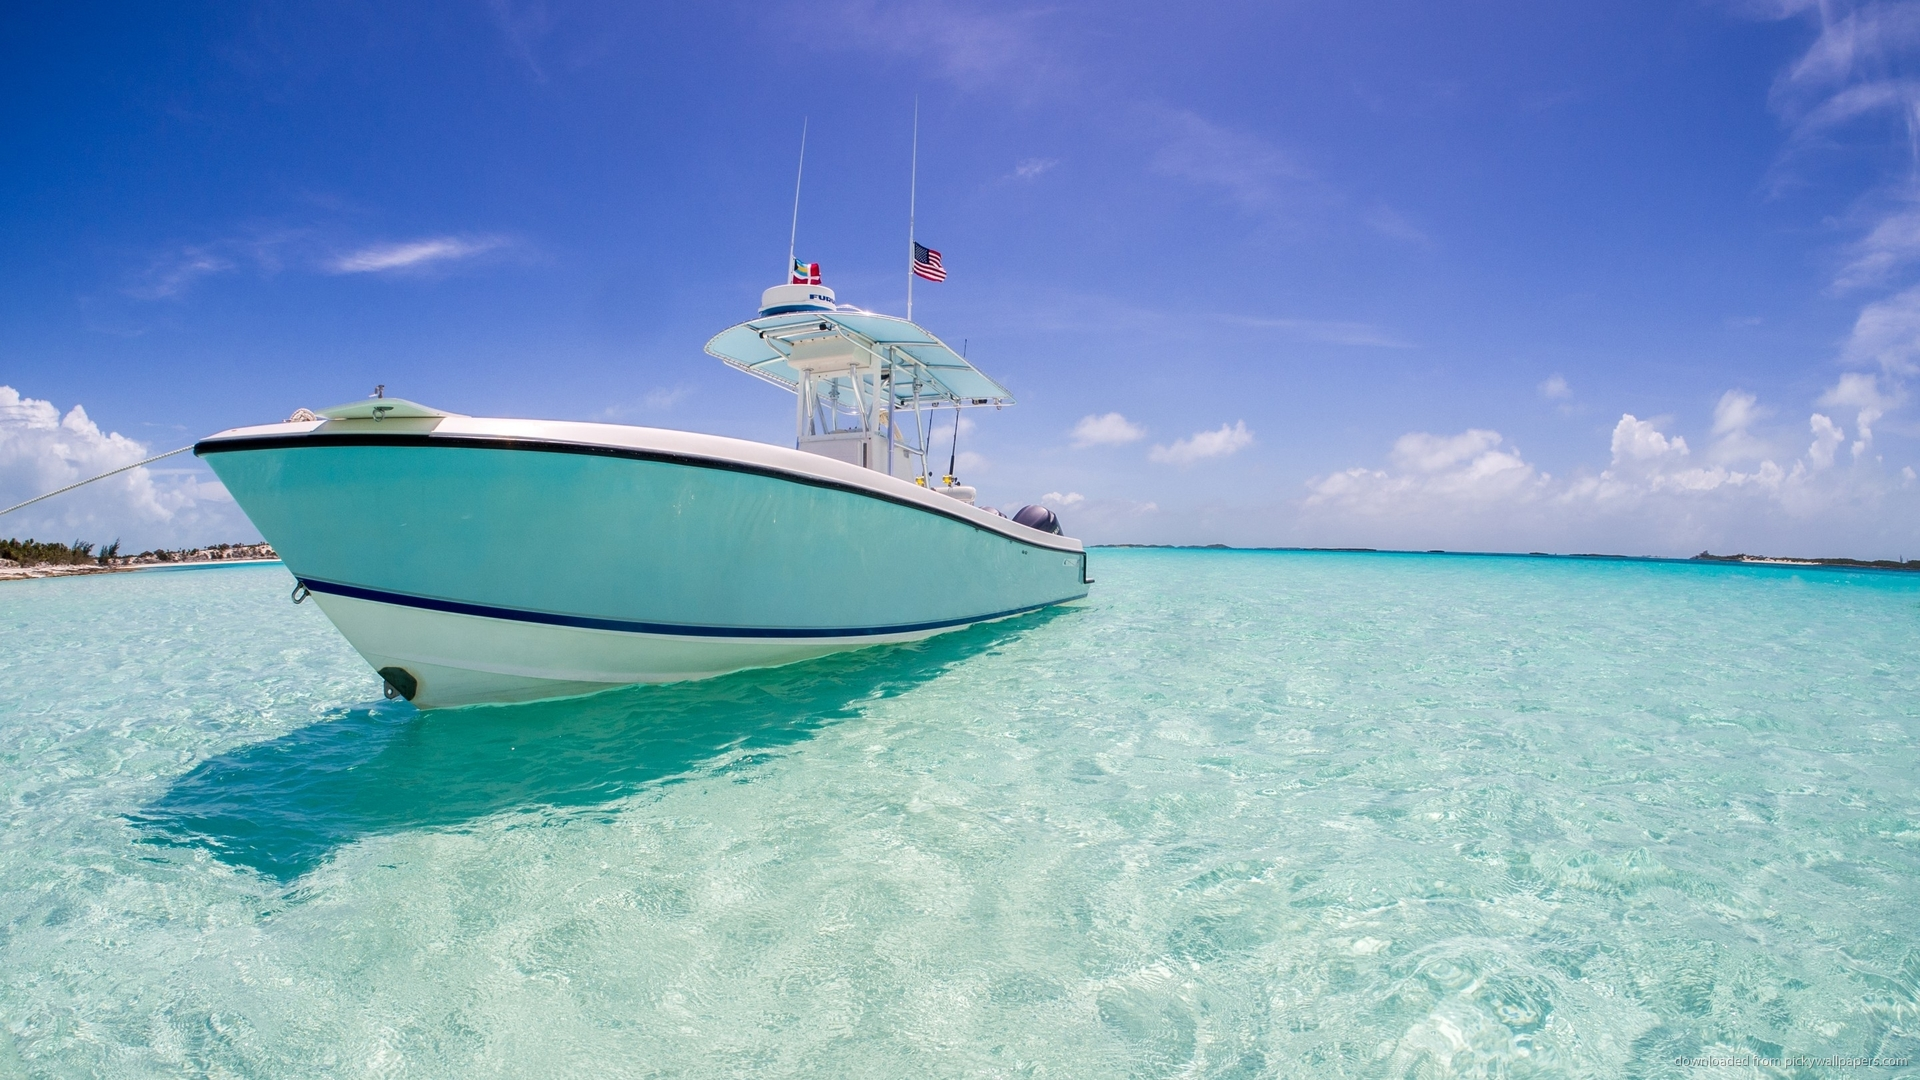 Download 1920x1080 Yacht In Caribbean Sea Wallpaper 1920x1080